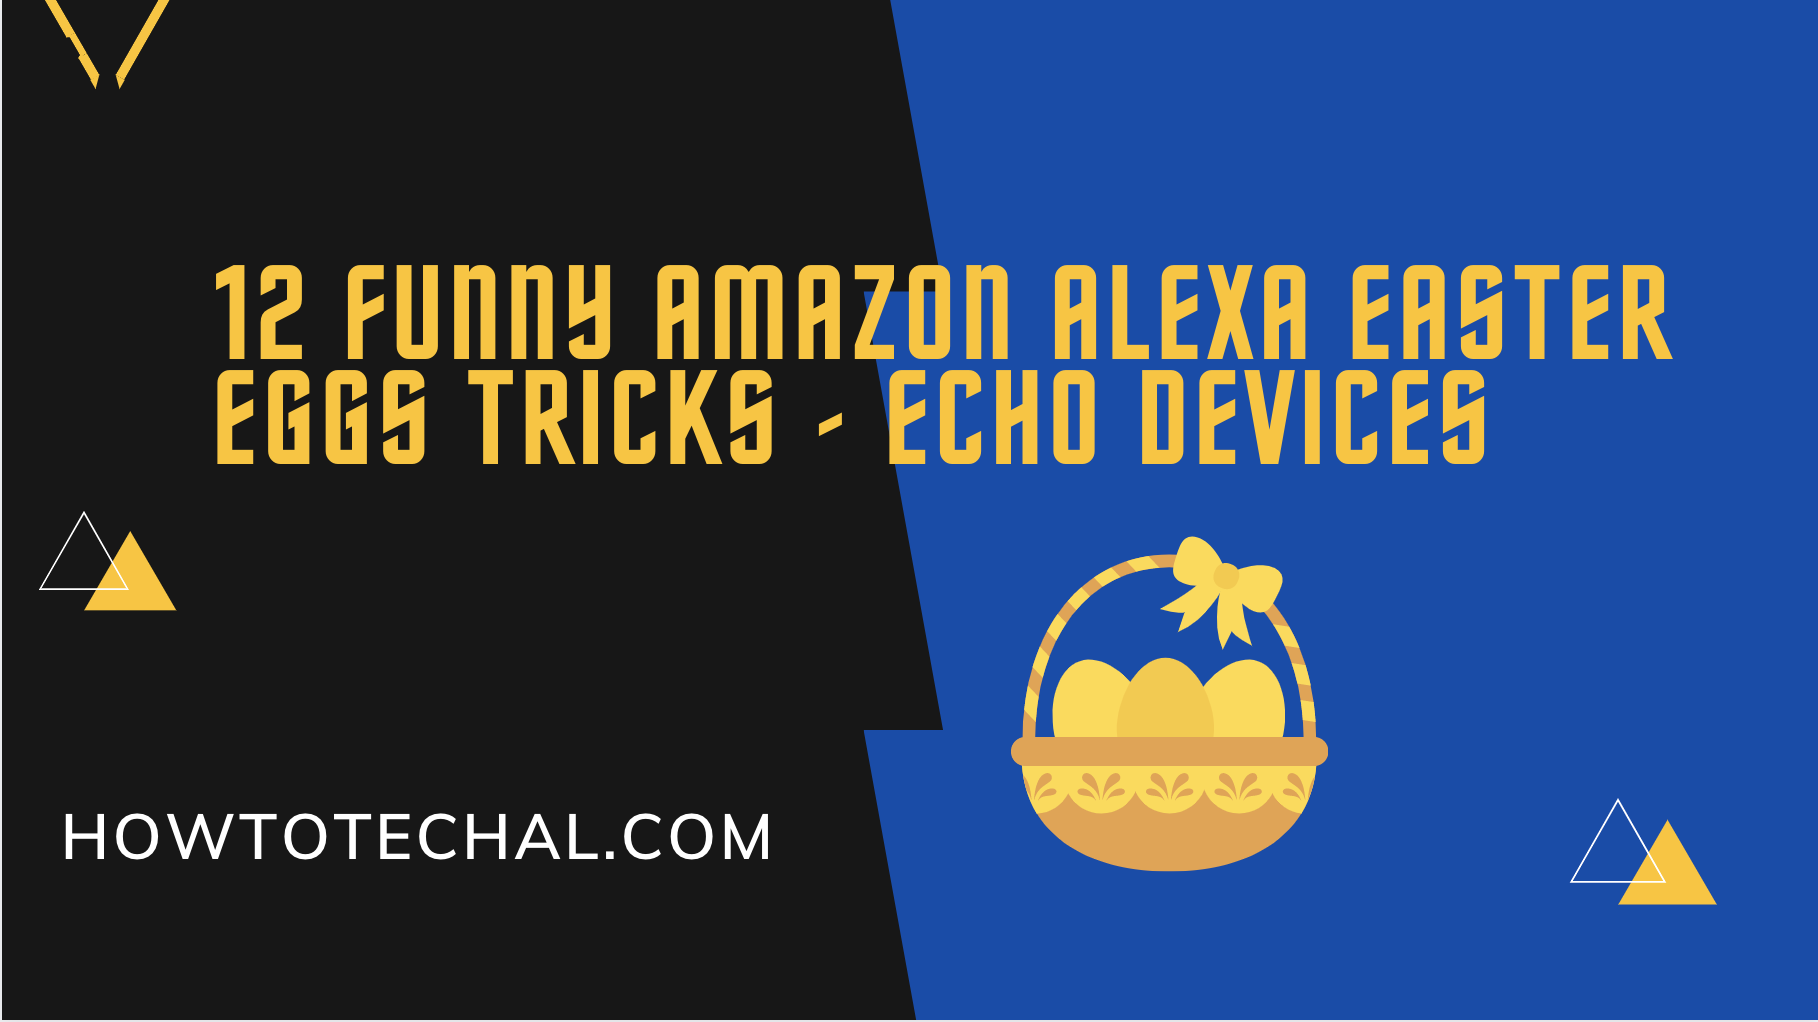 Amazon Alexa Easter